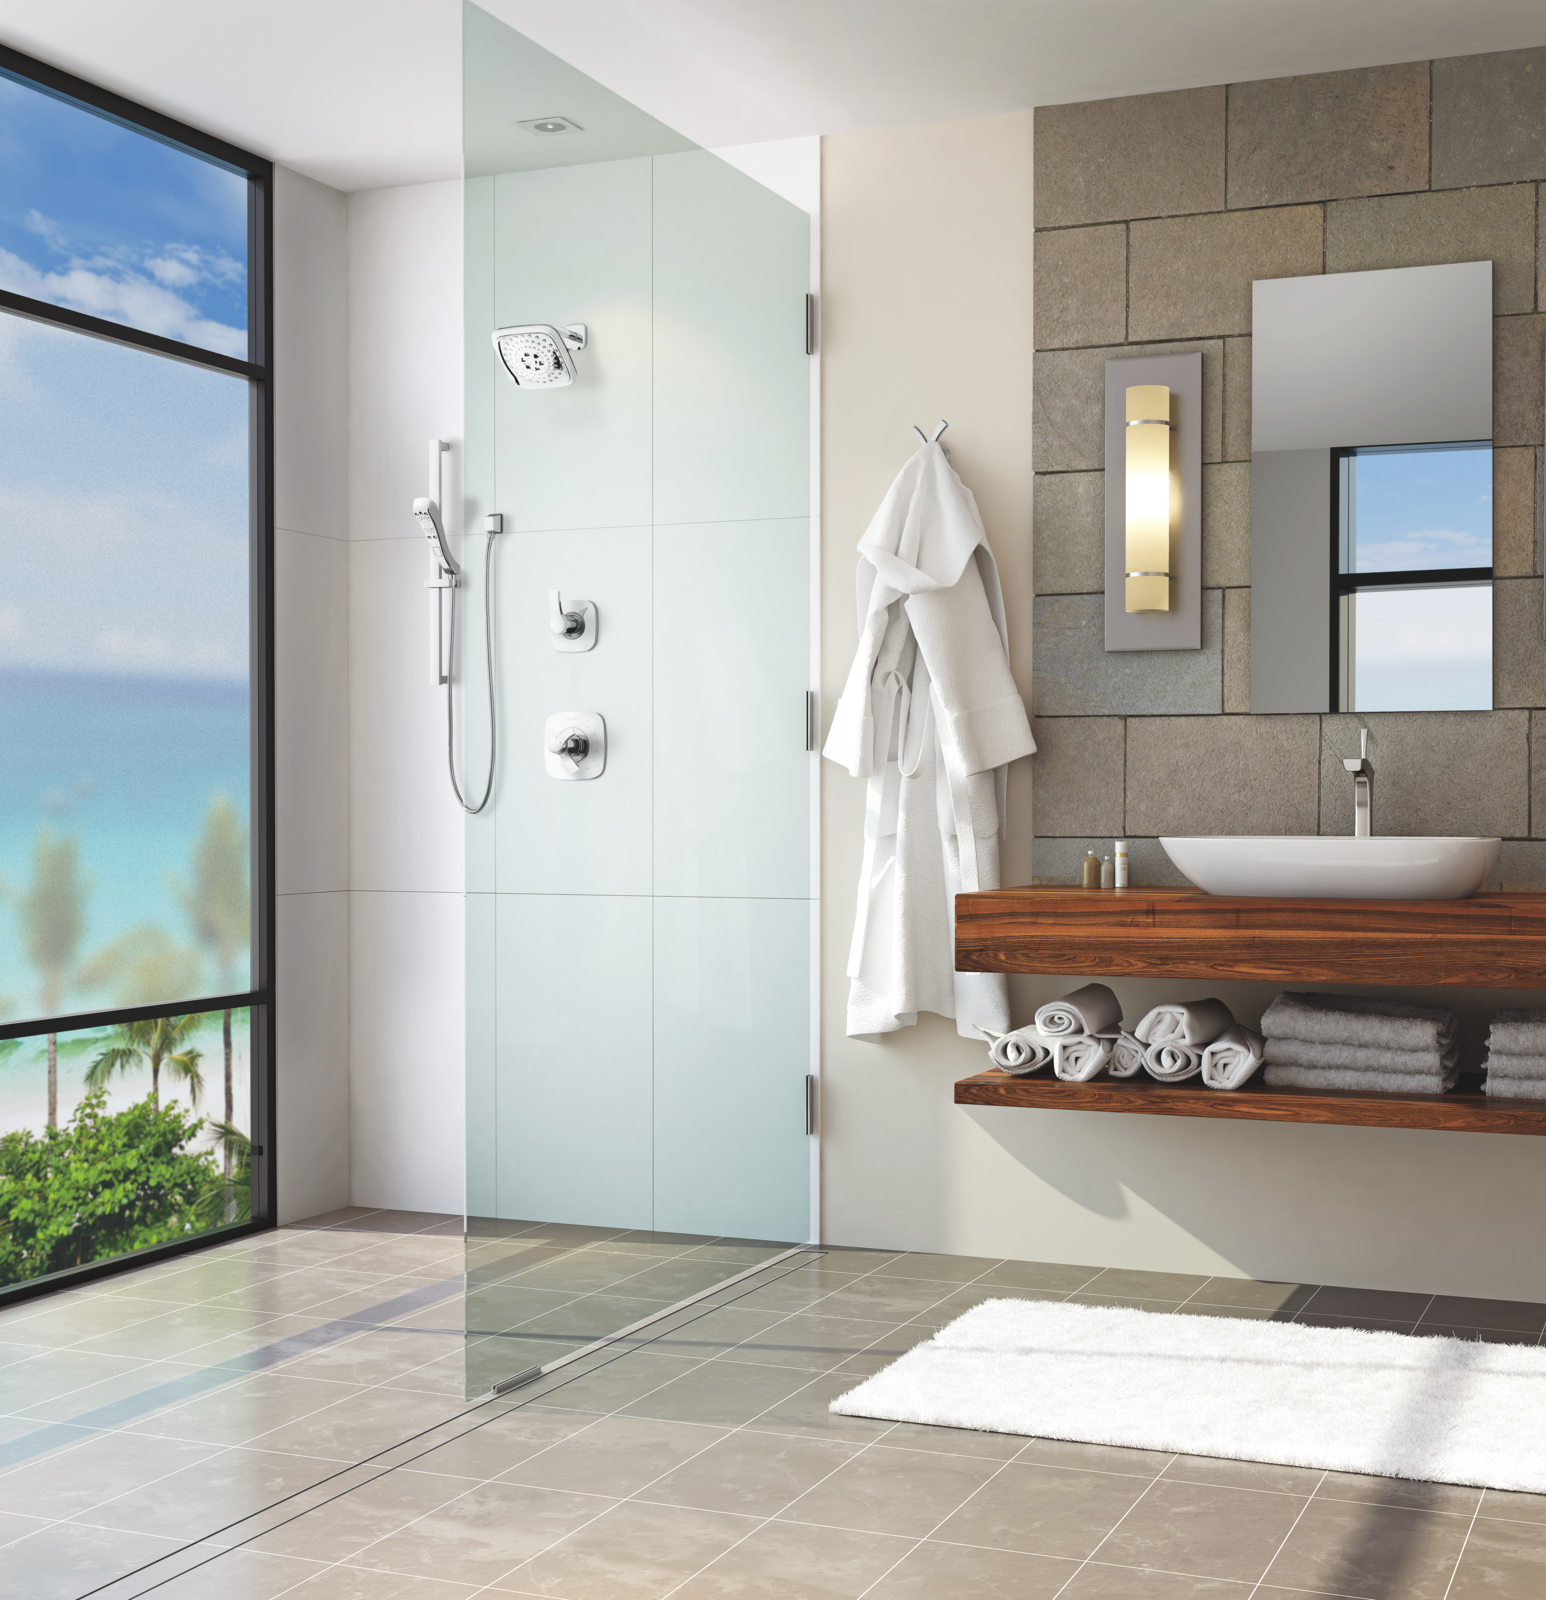 Bathroom with glass-enclosed full shower and vessel sink above floating wood countertops.